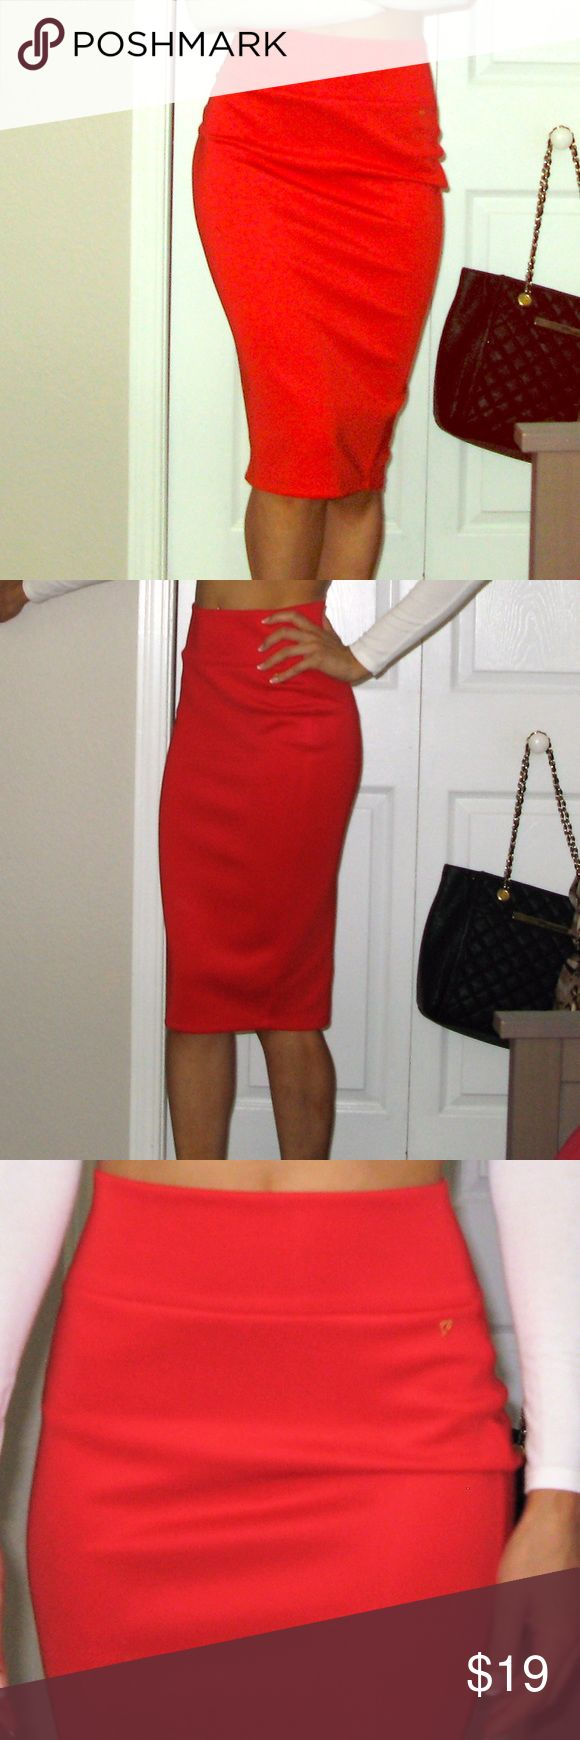 Thalia Sodi red pencil skirt size XS Work once to a concert Thalia Sodi pencil skirt size XS, pull on with slight banded waist. So sexy! Thalia Sodi Skirts Pencil